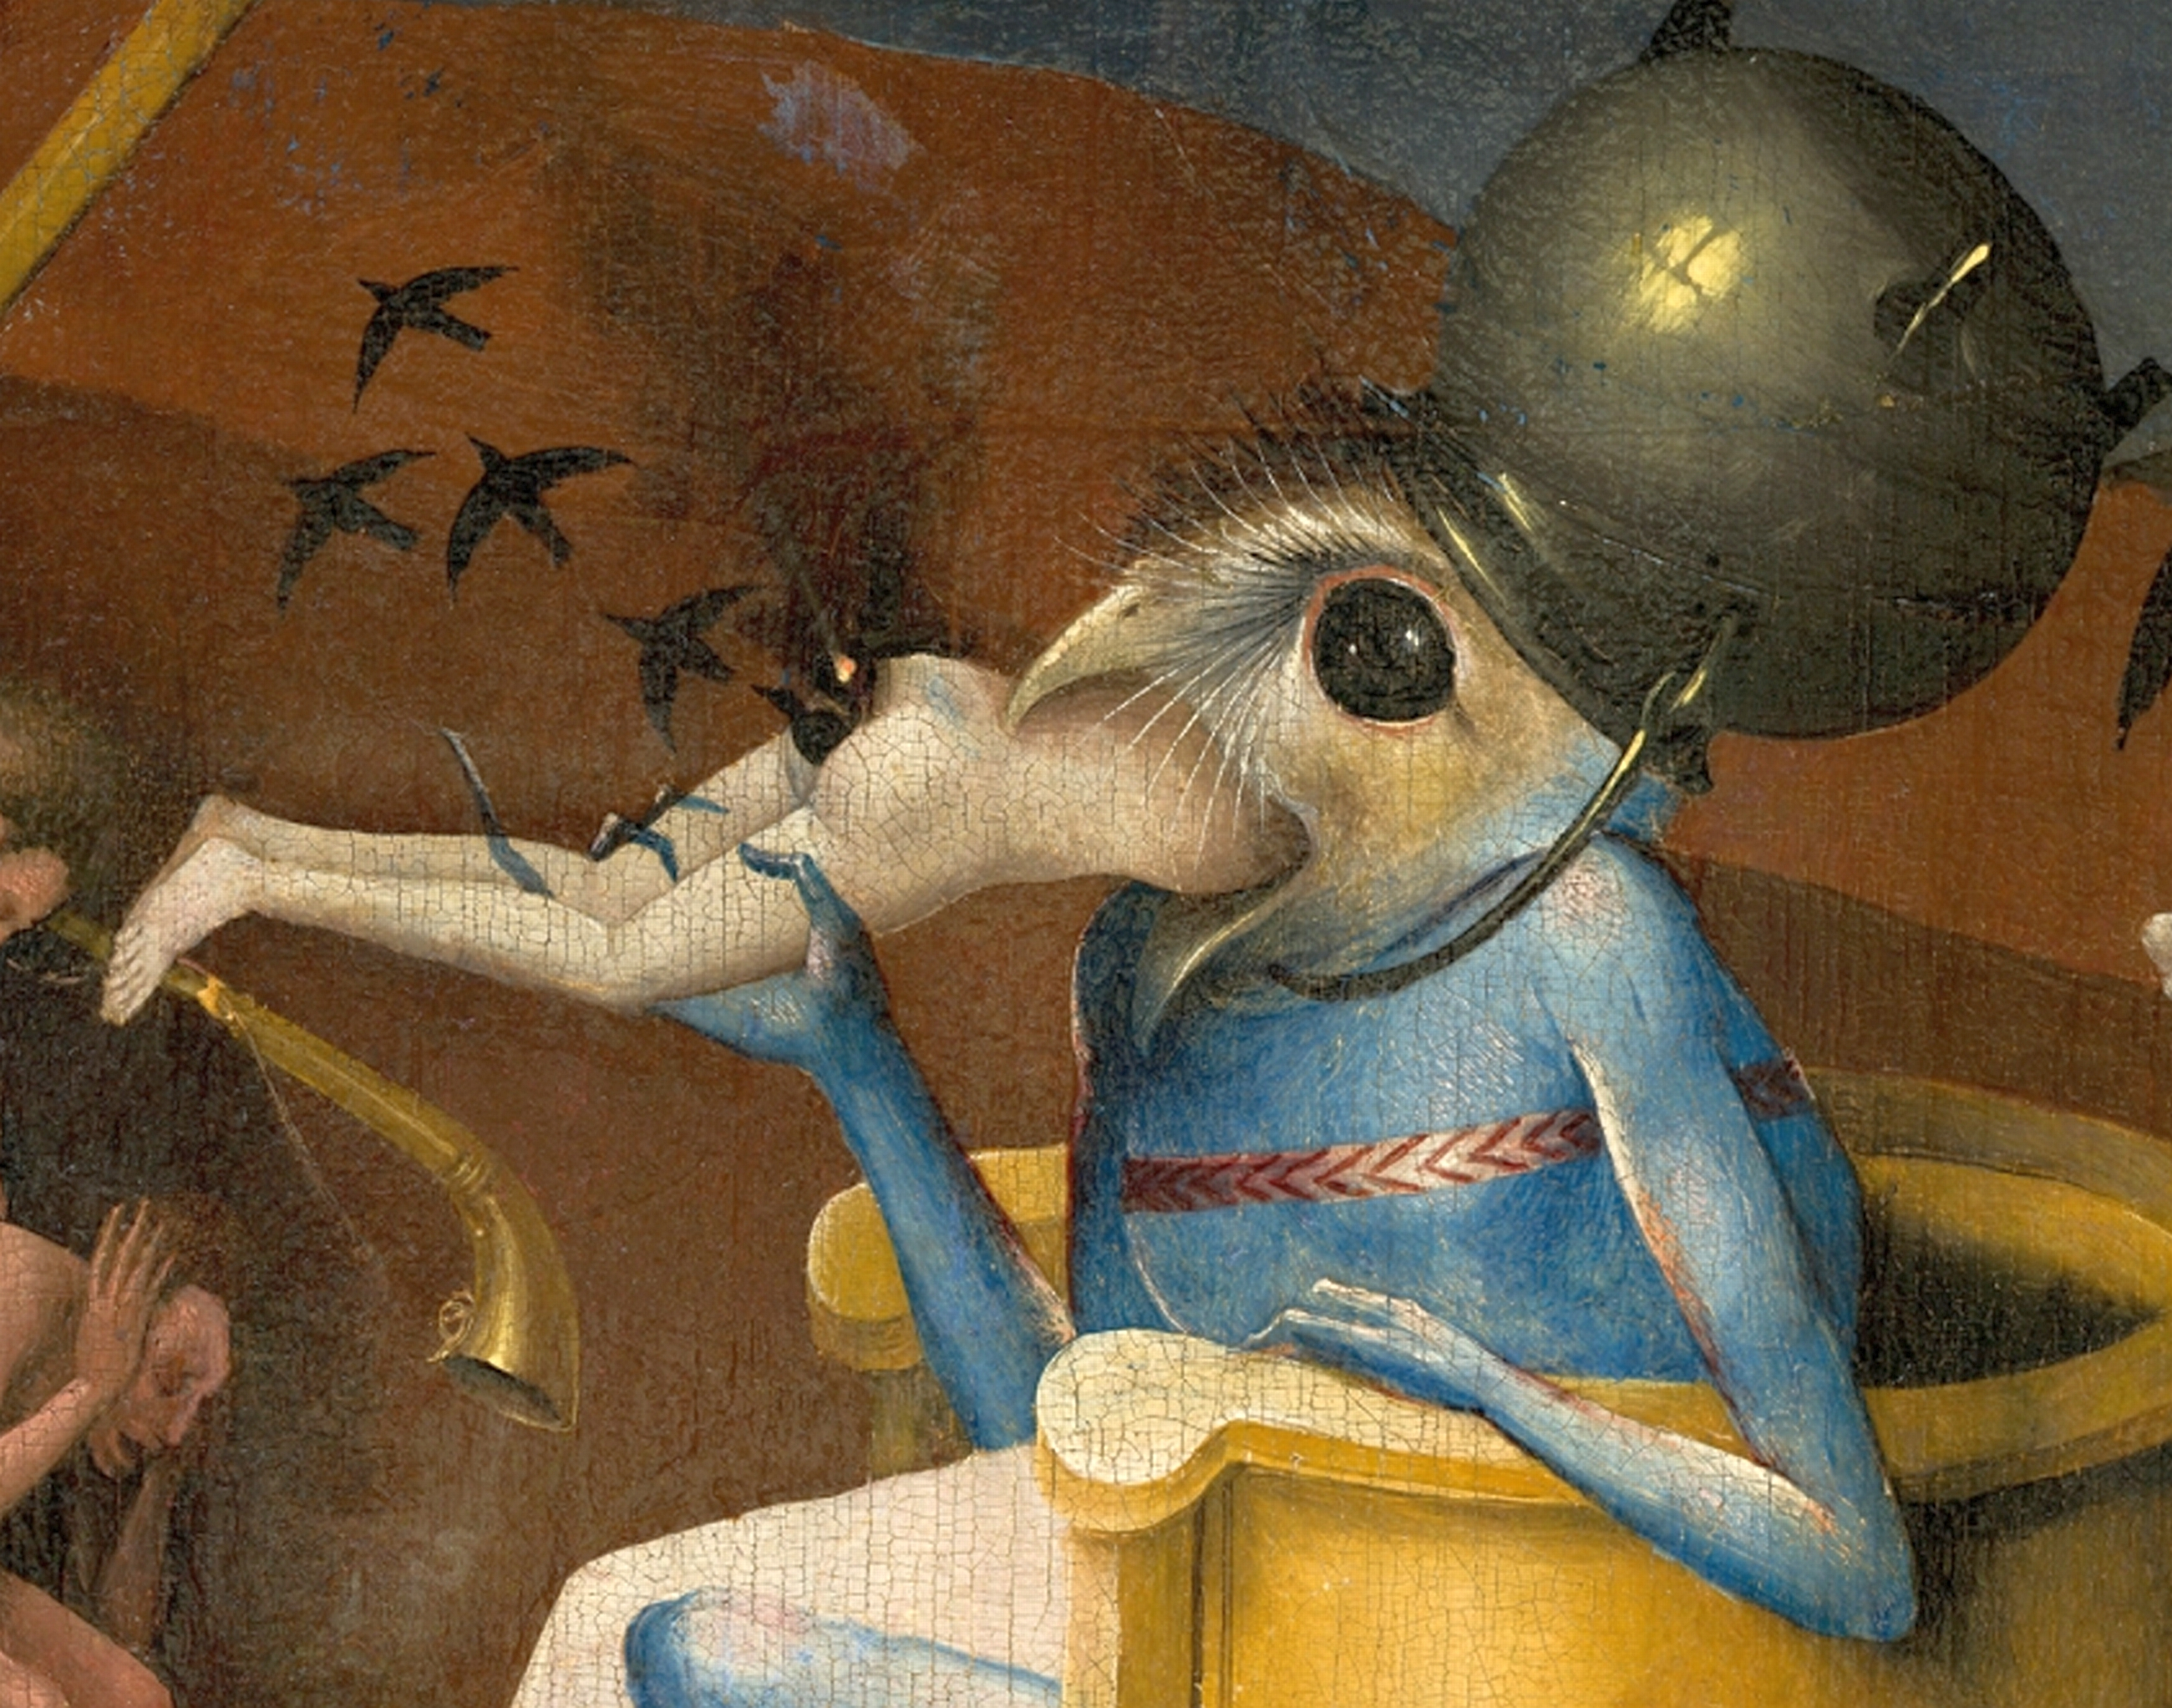 FileBosch, Hieronymus , The Garden of Earthly Delights